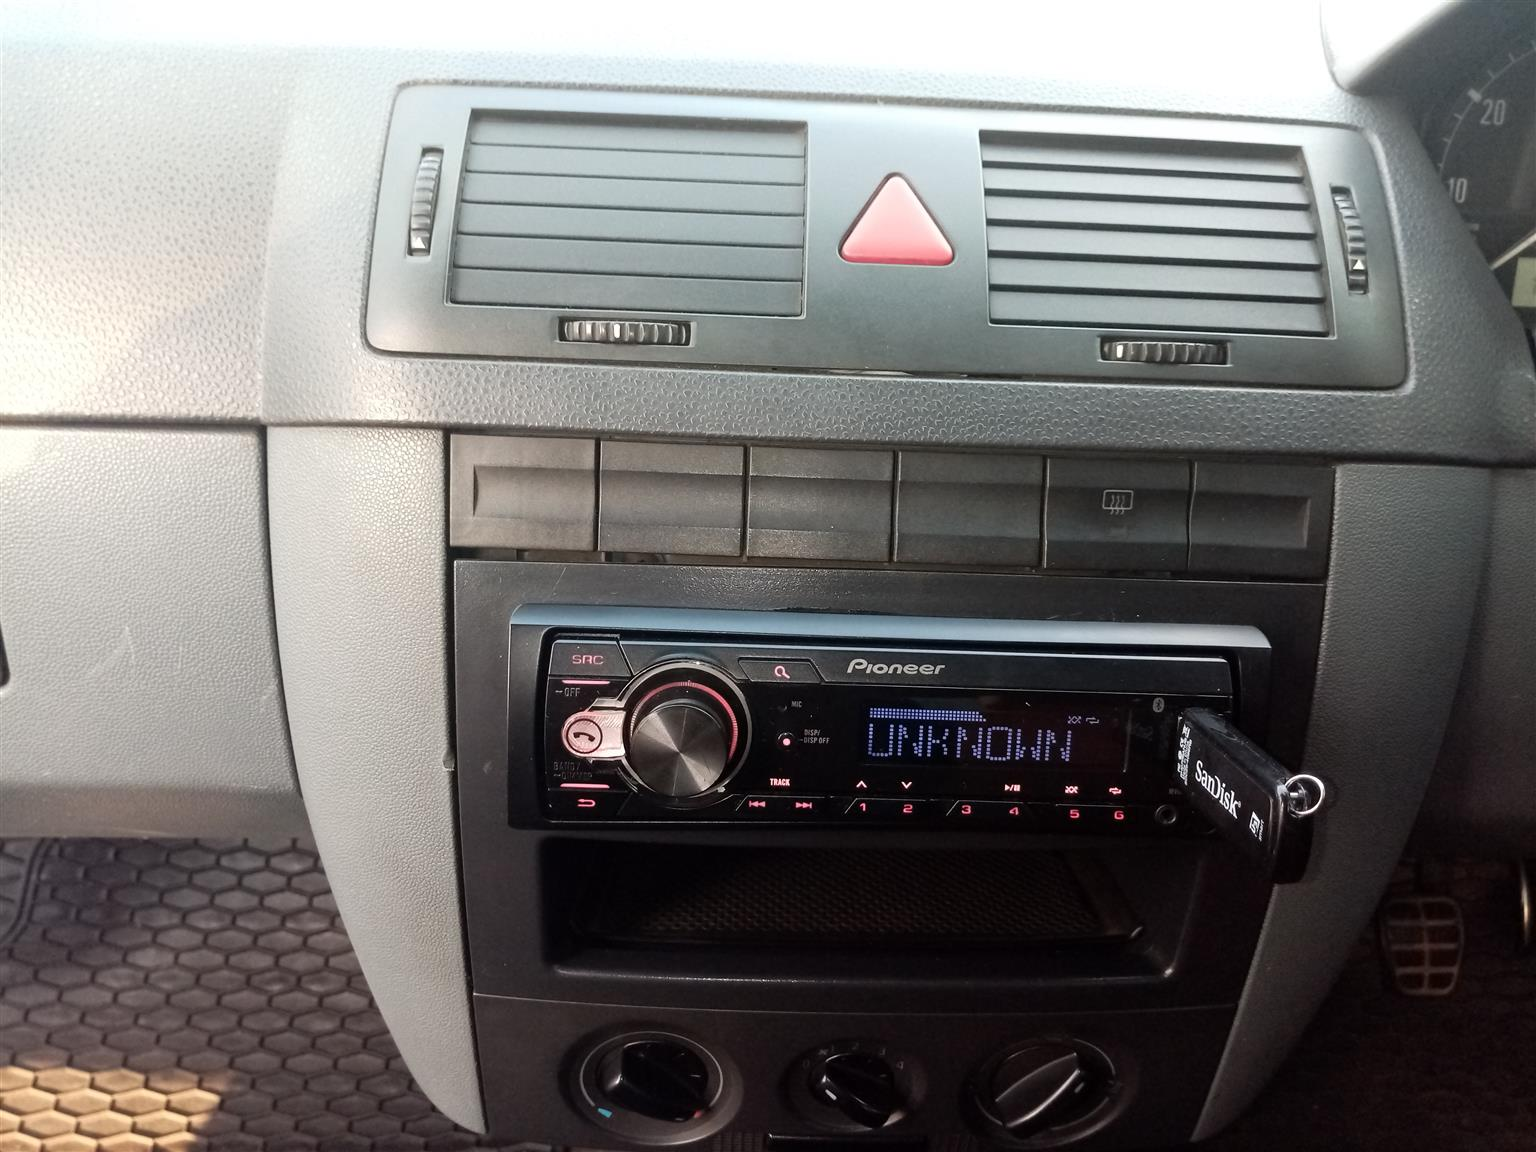 Citi golf 1.4i 2008 model, full injection, smash and crab applied to glass,